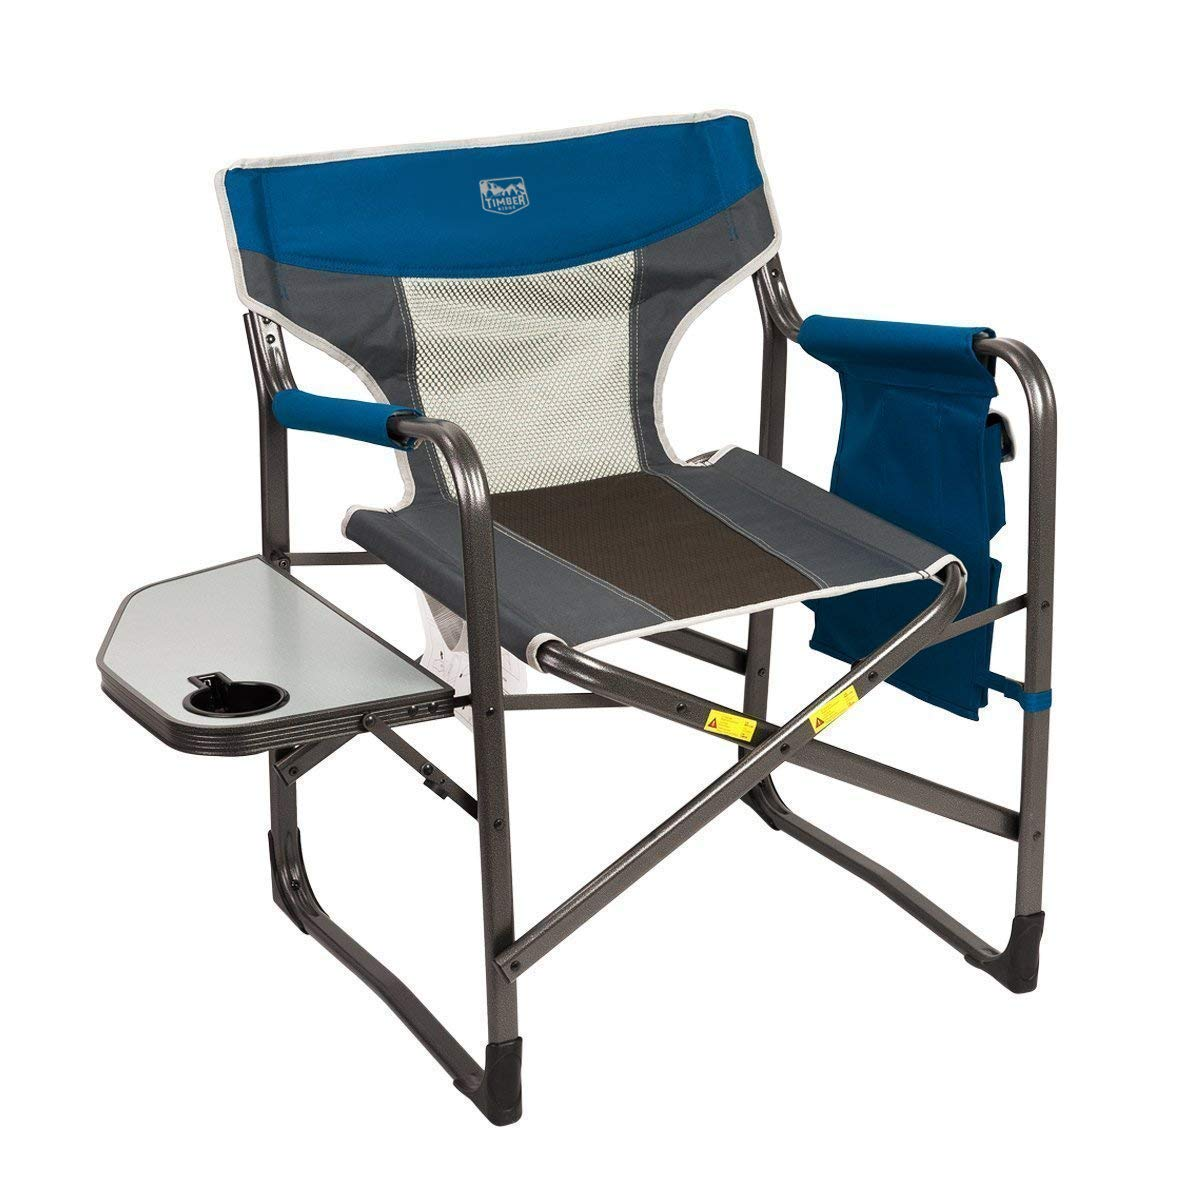 Timber Ridge Director's Chair Oversize Portable Folding Support 300lbs Utility Lightweight for Camping Breathable Mesh Back with Side Storage Bag, Side Table by Timber Ridge